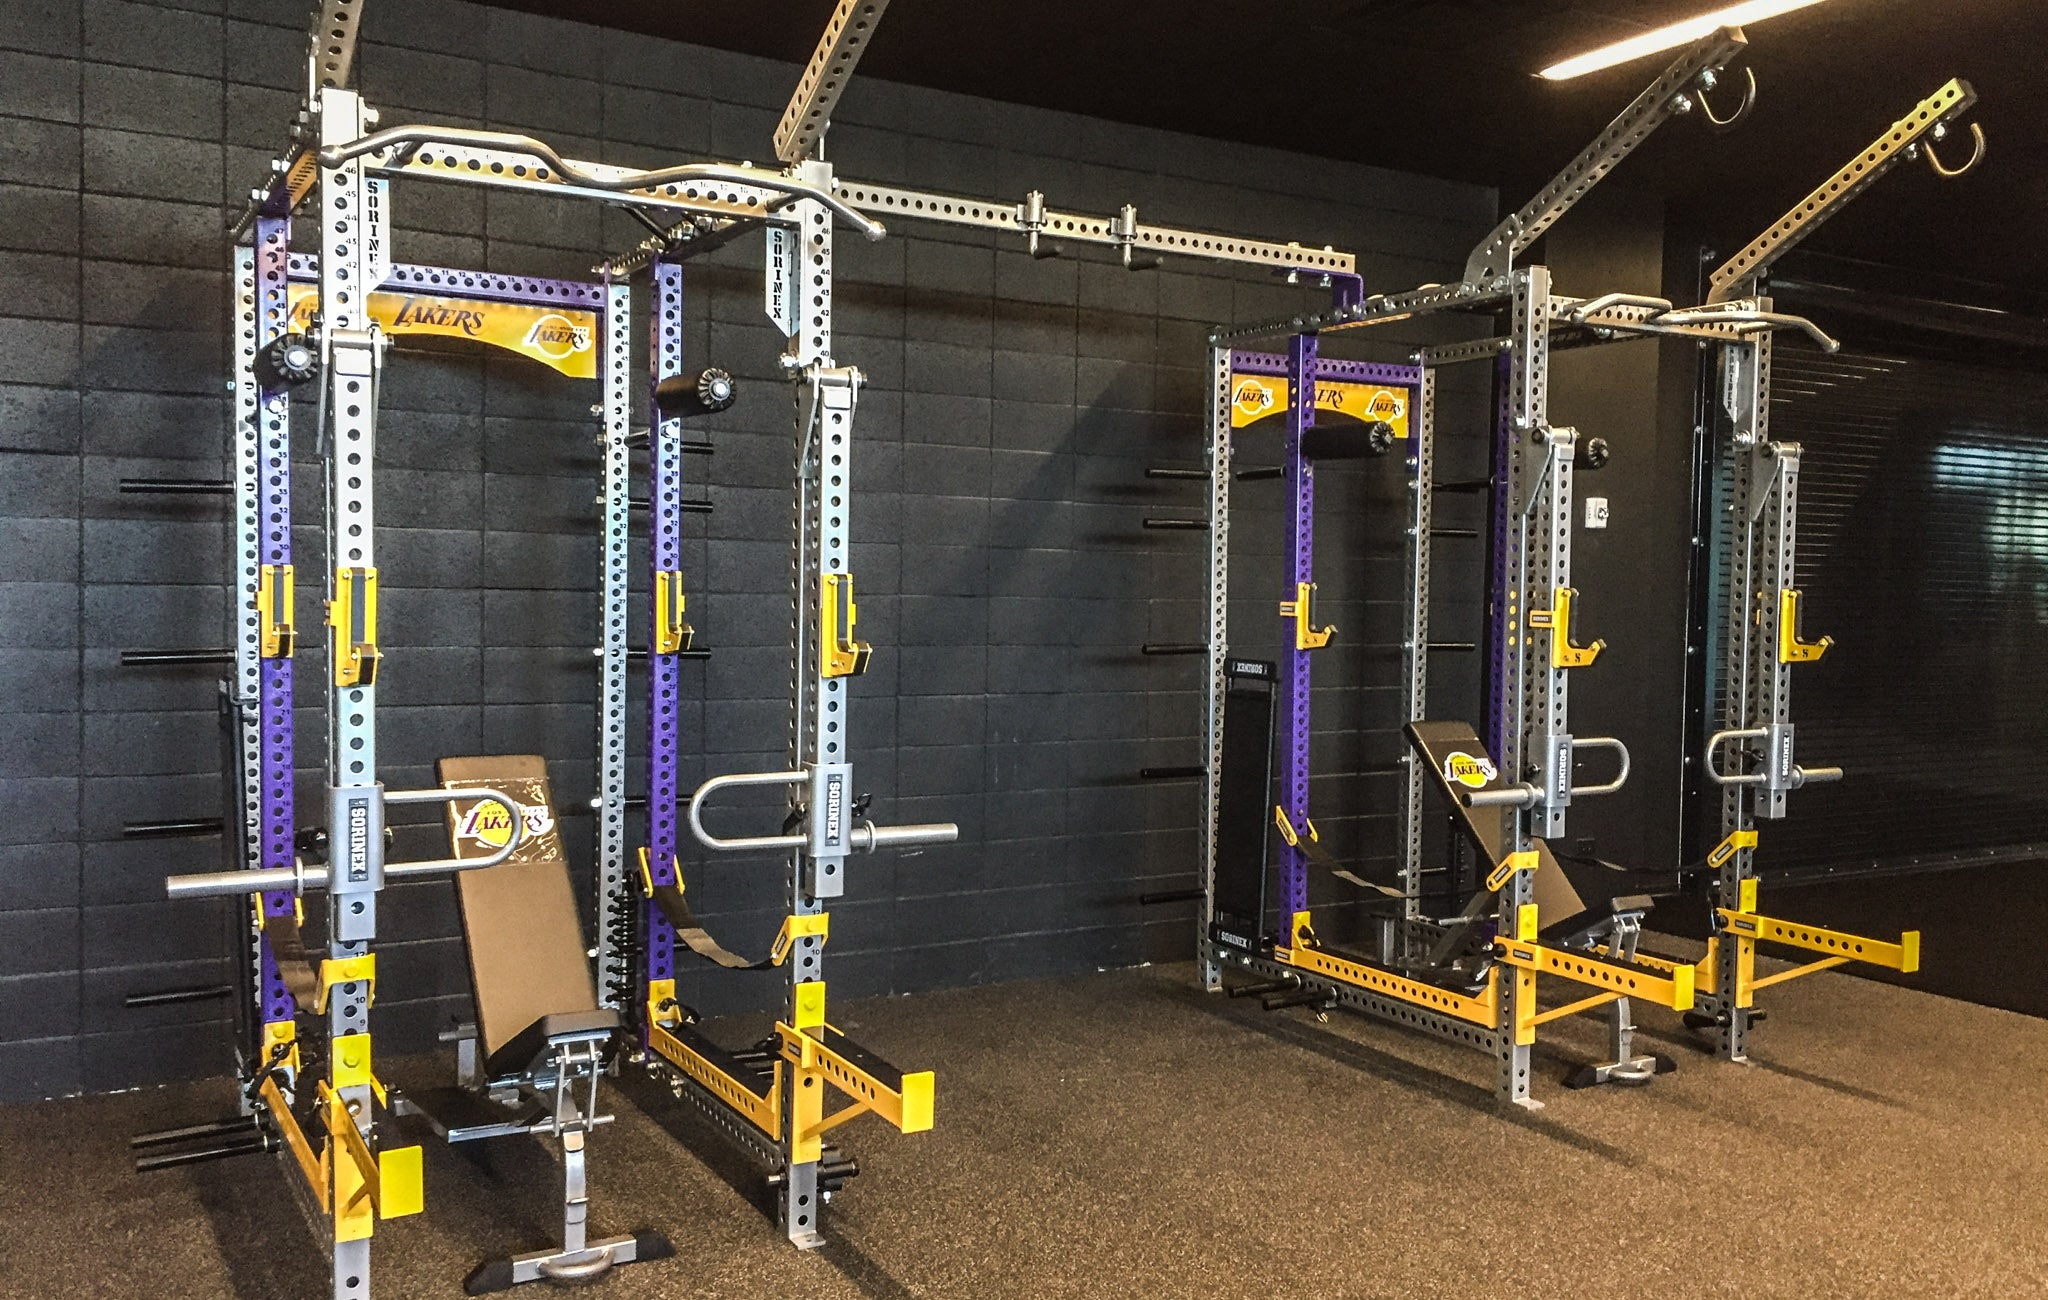 LA Lakers Weight Room